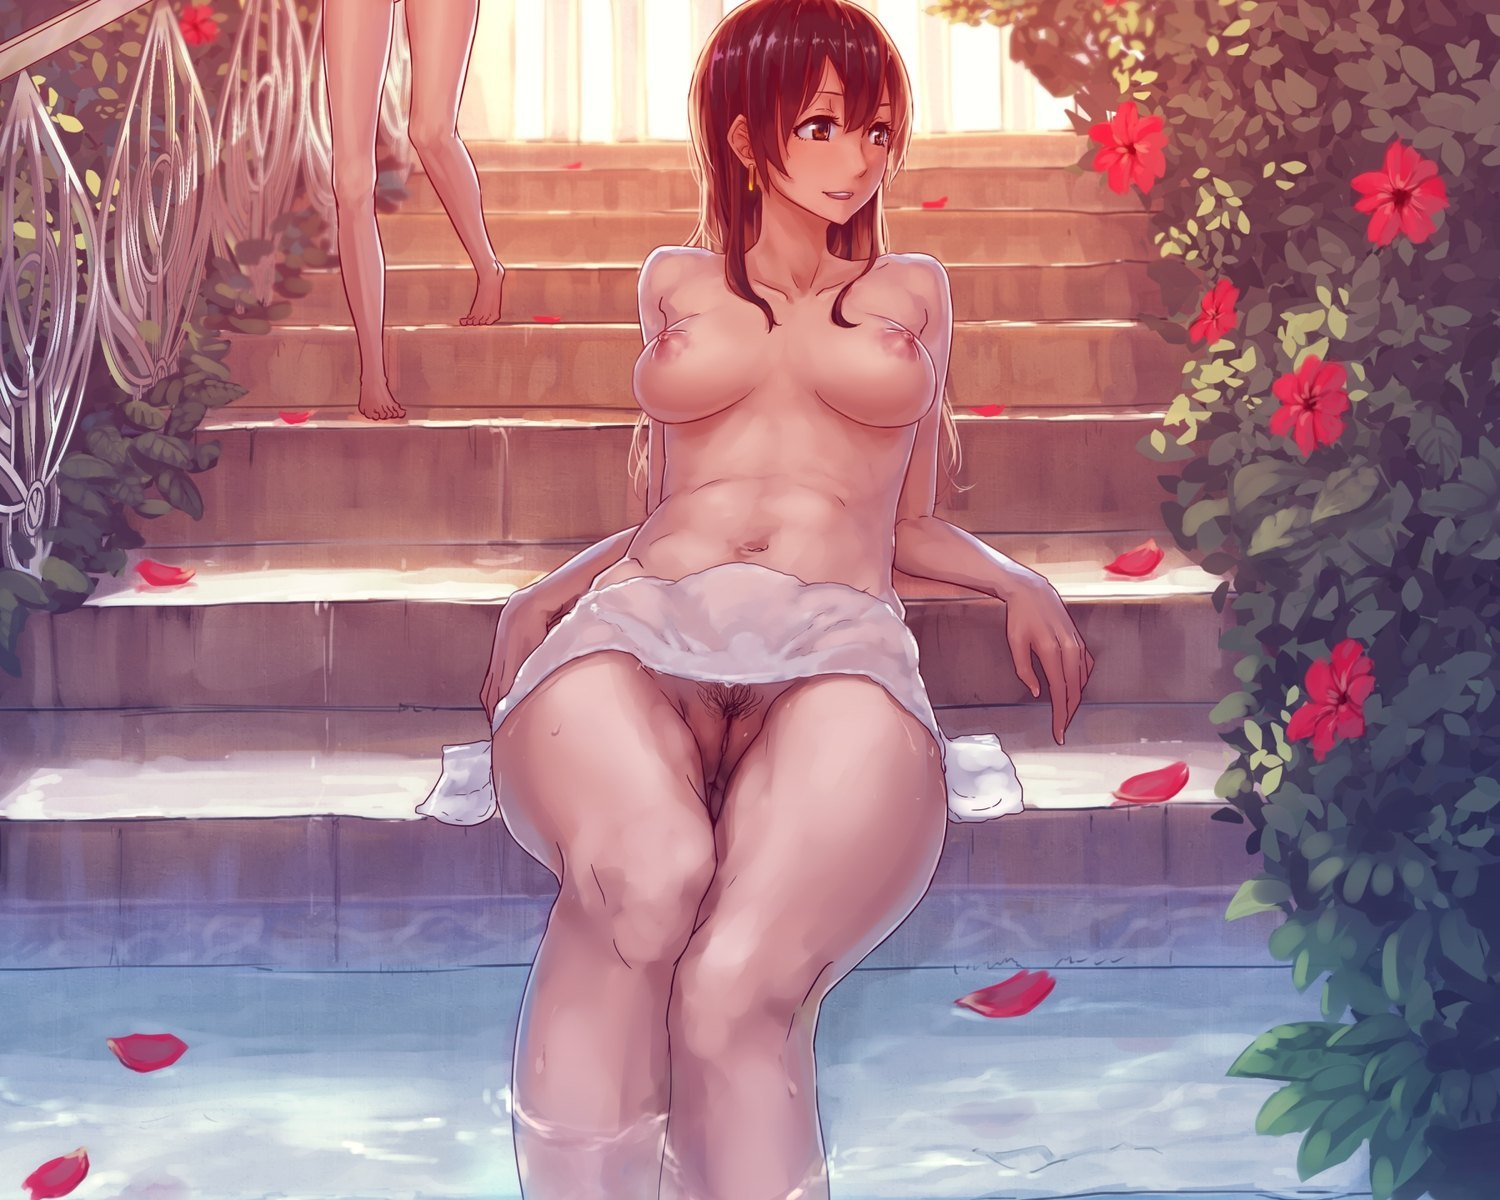 fotos-anime-porno (7)